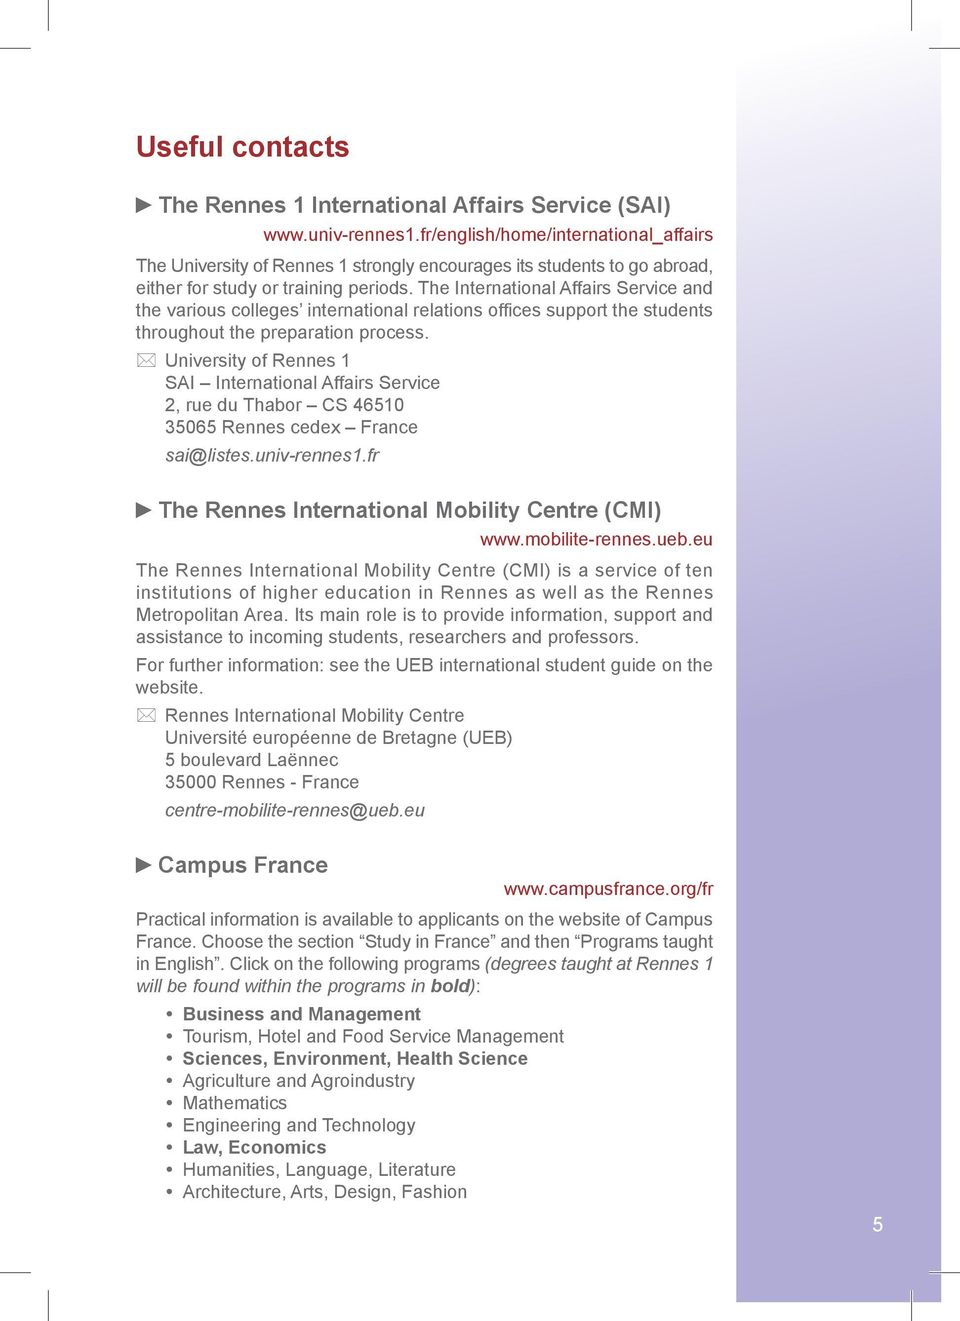 The International Affairs Service and the various colleges international relations offices support the students throughout the preparation process.